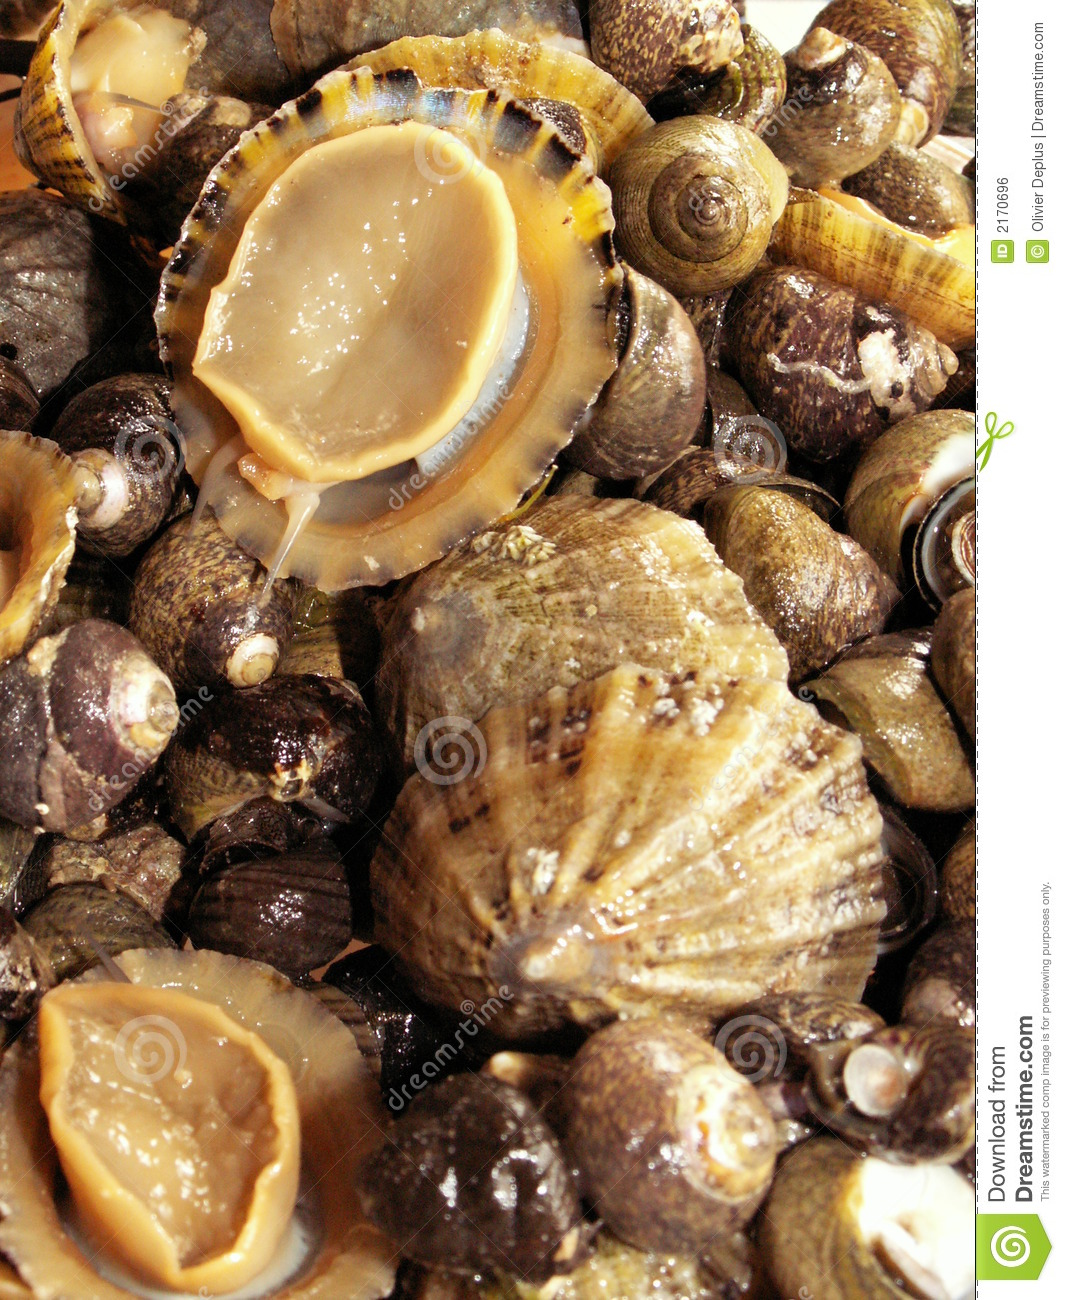 Limpets and periwinkles